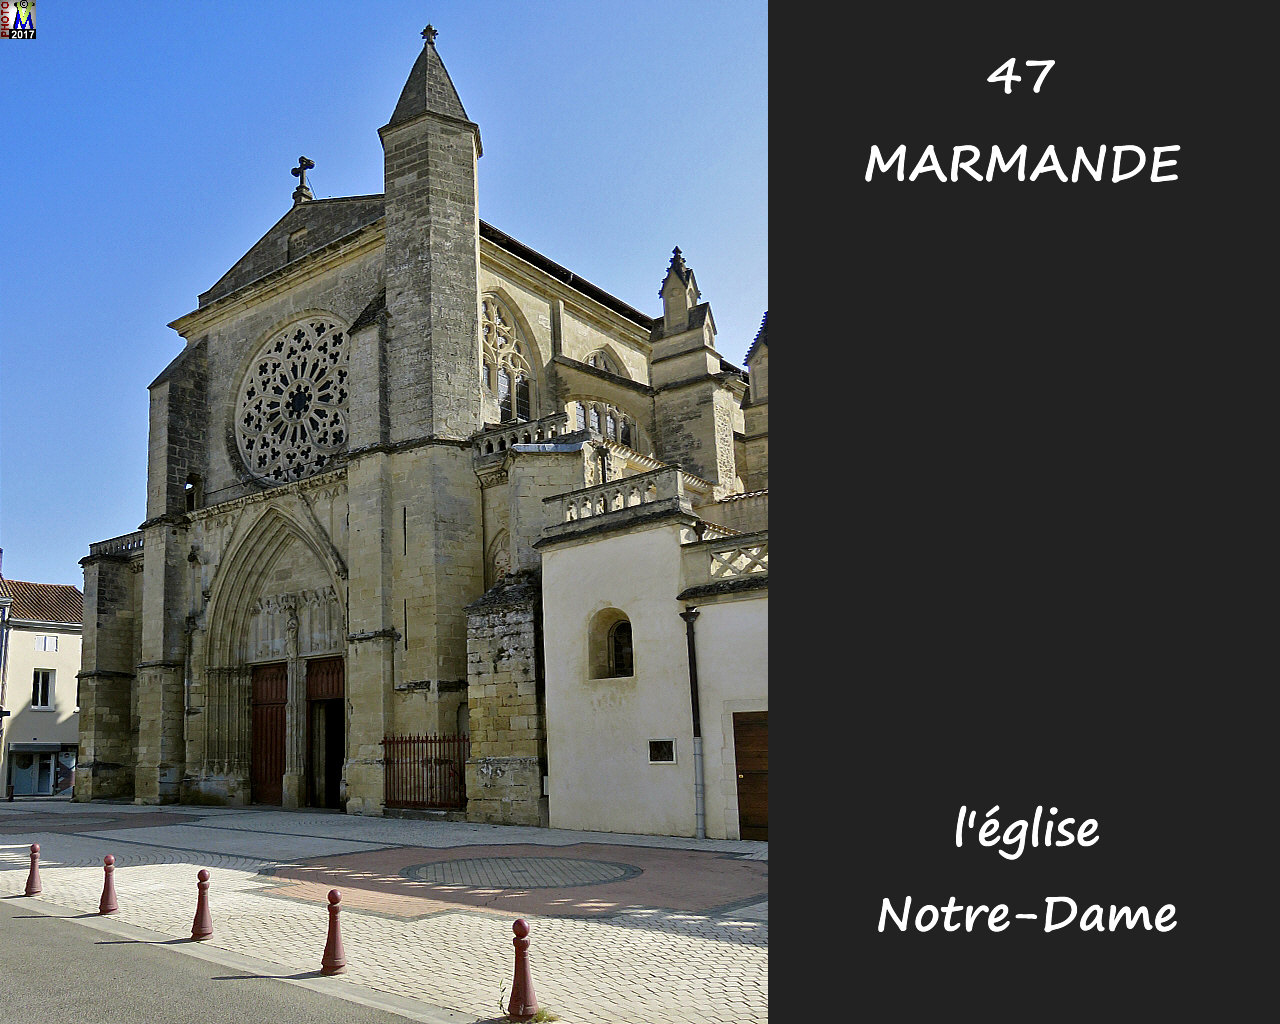 47MARMANDE_eglise_1006.JPG